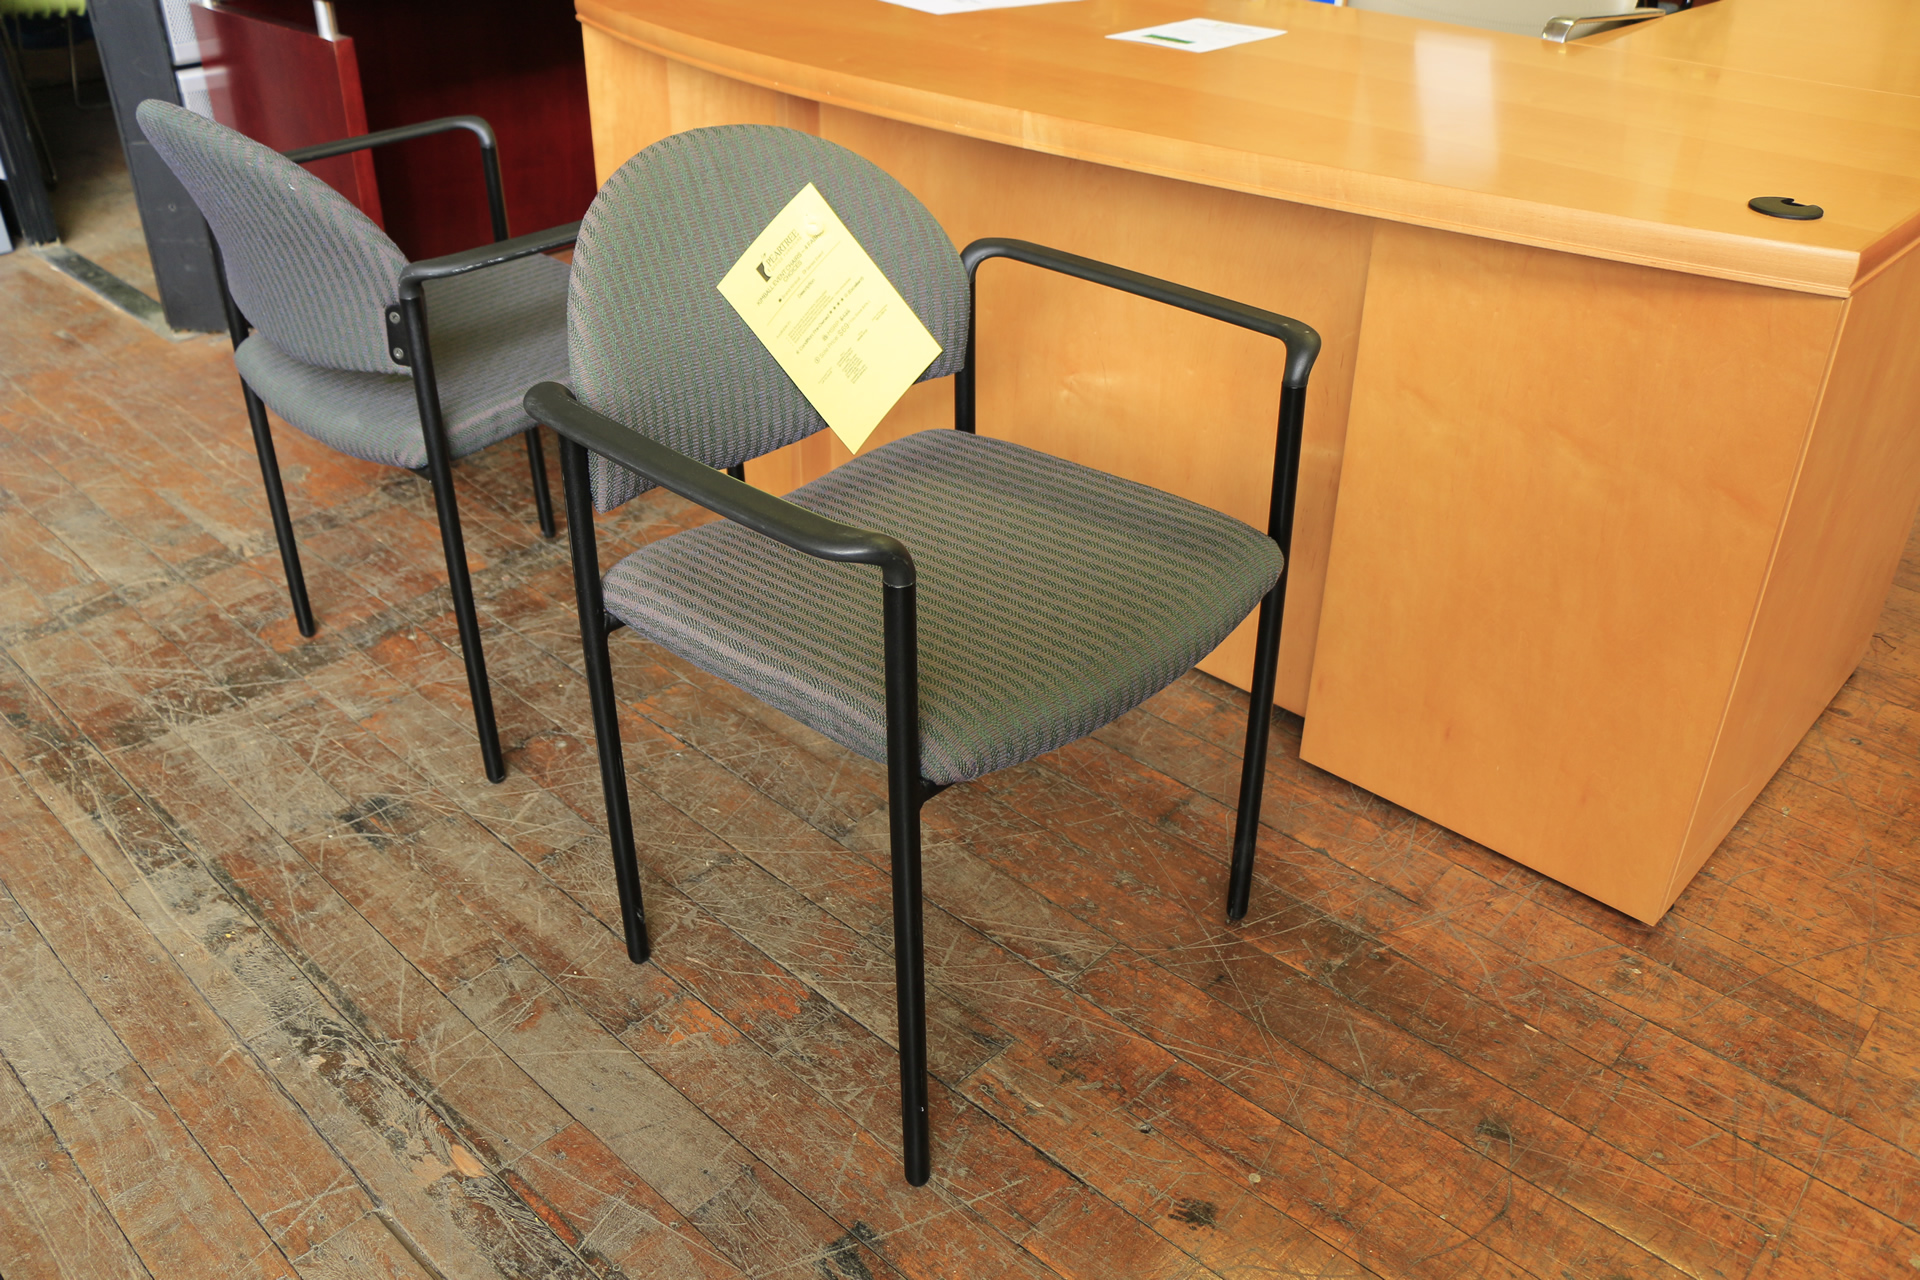 peartreeofficefurniture_peartreeofficefurniture_peartreeofficefurniture_2015-06-02_17-30-51.jpg